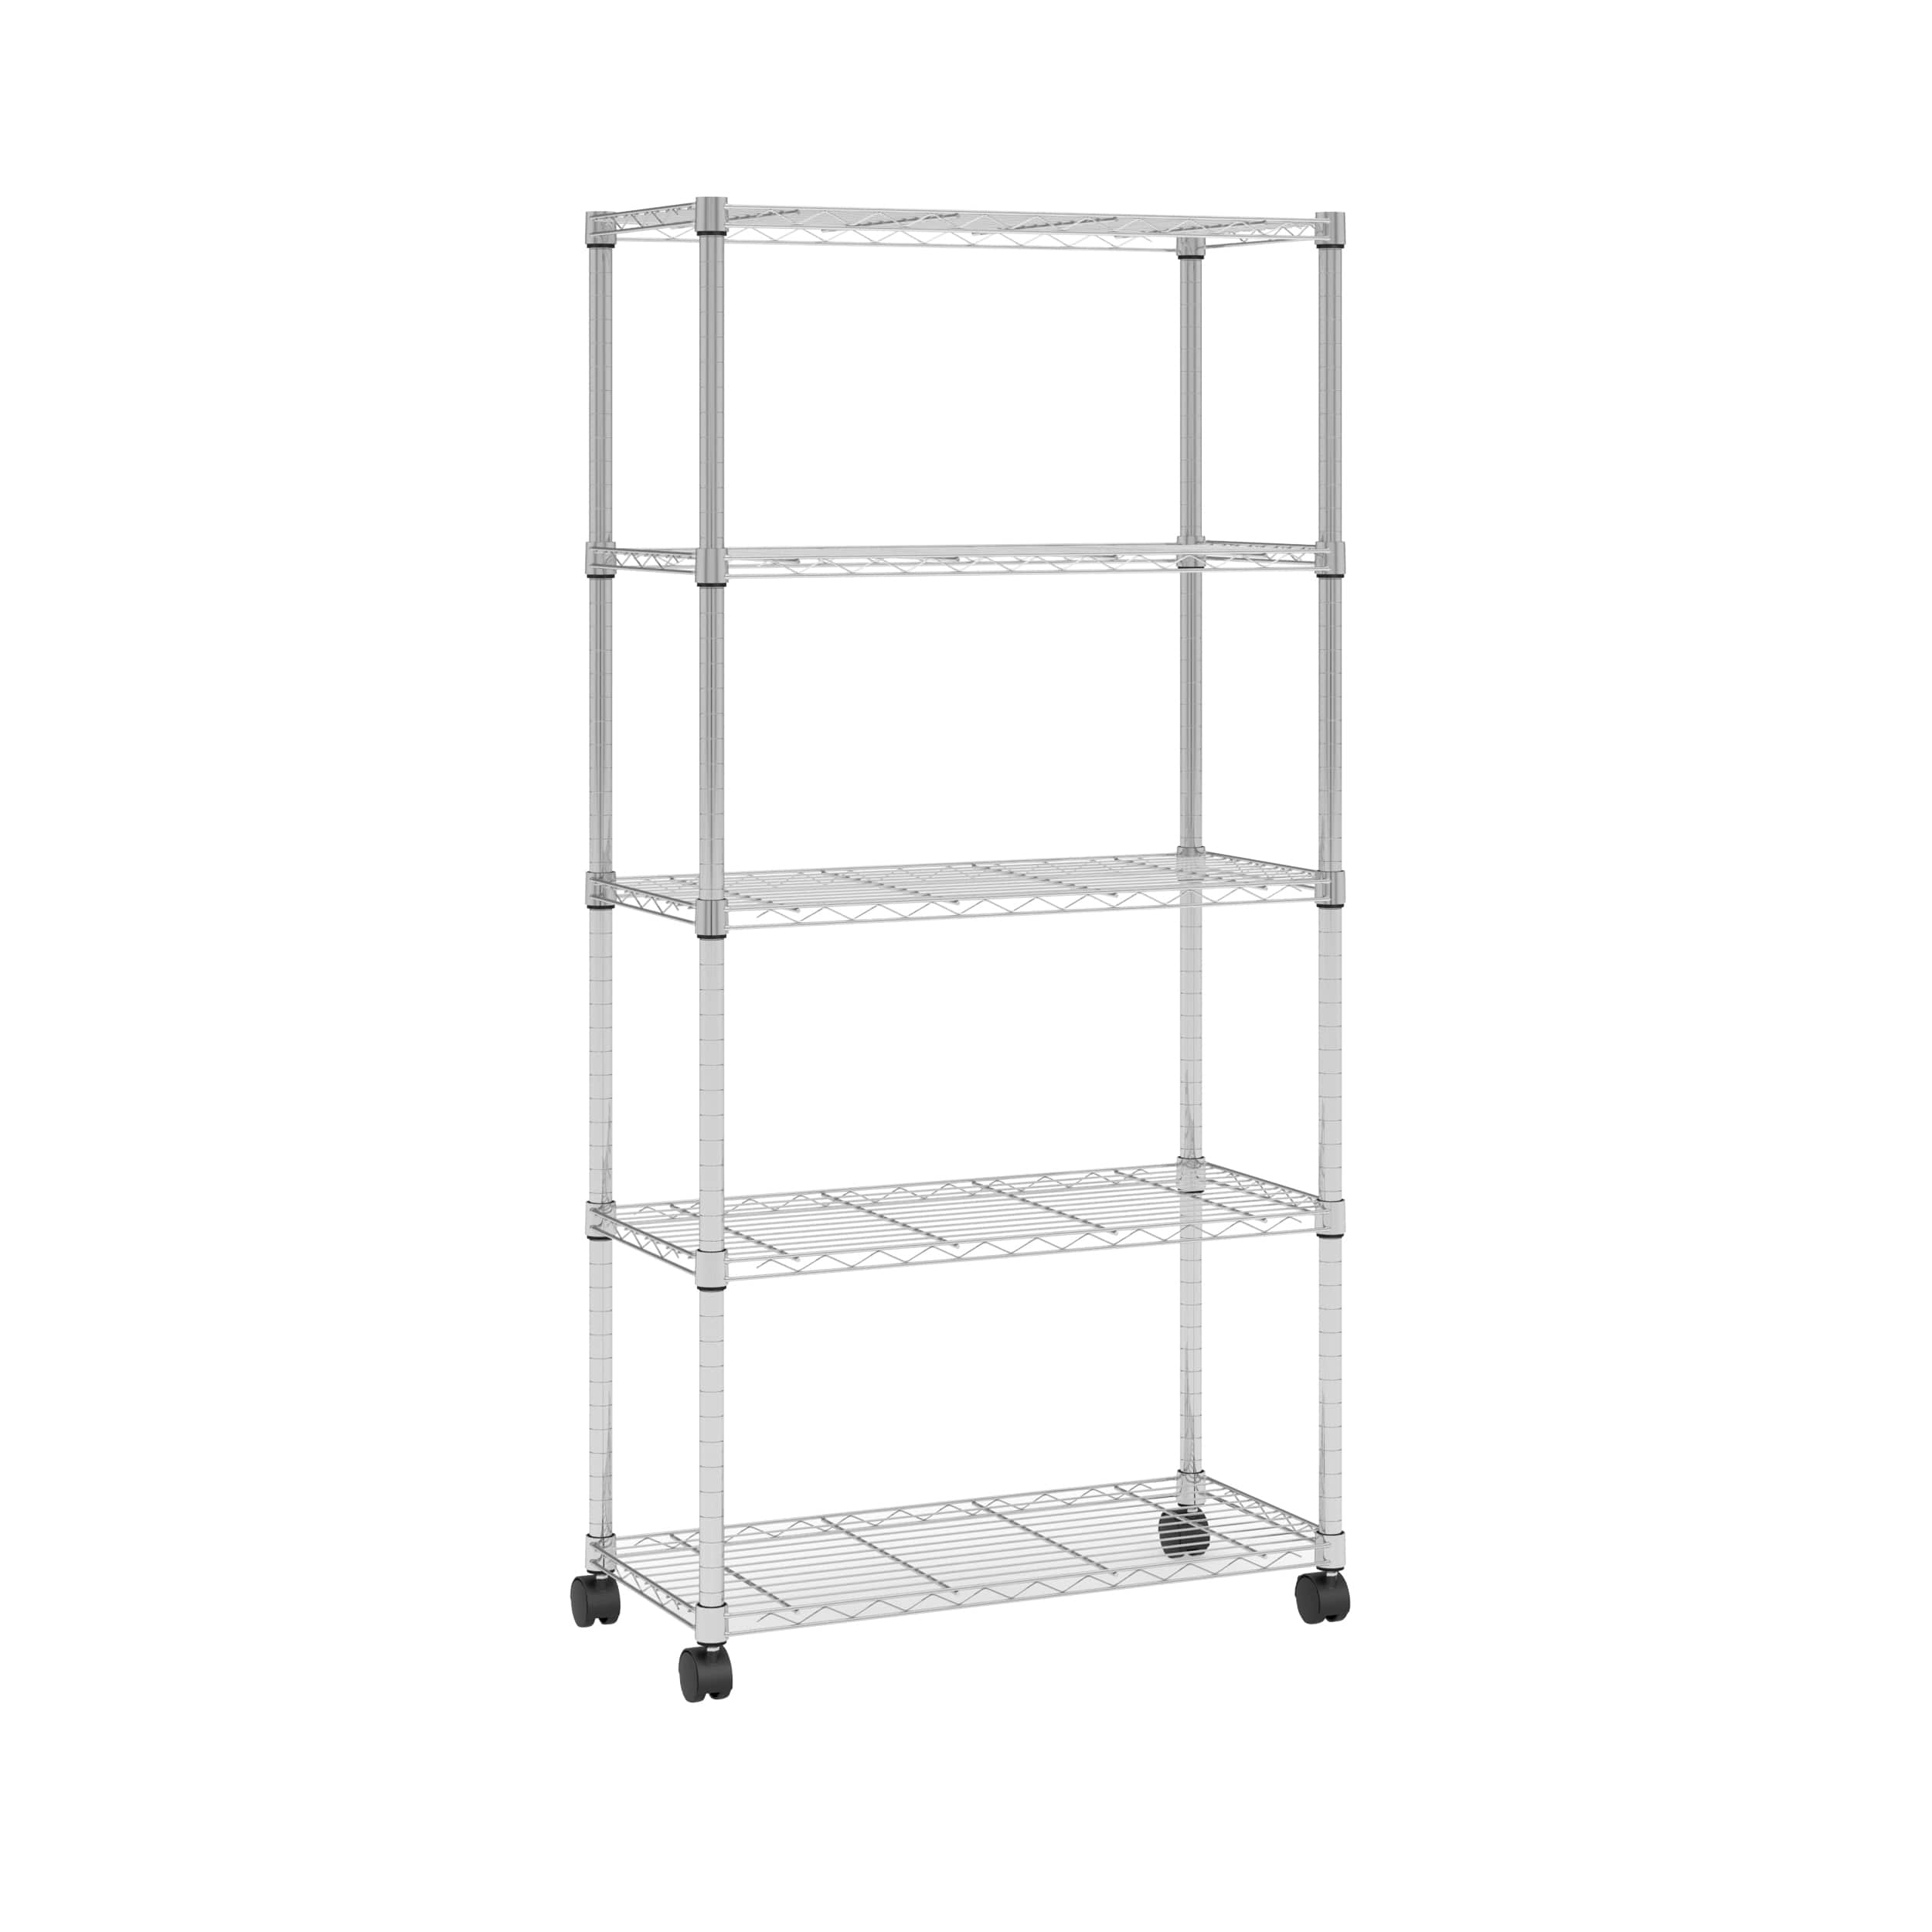 OFM Adjustable Wire Shelving Unit 30 X 60, In Chrome (S306014-CHRM) :  $51.99 AC + Free Shipping